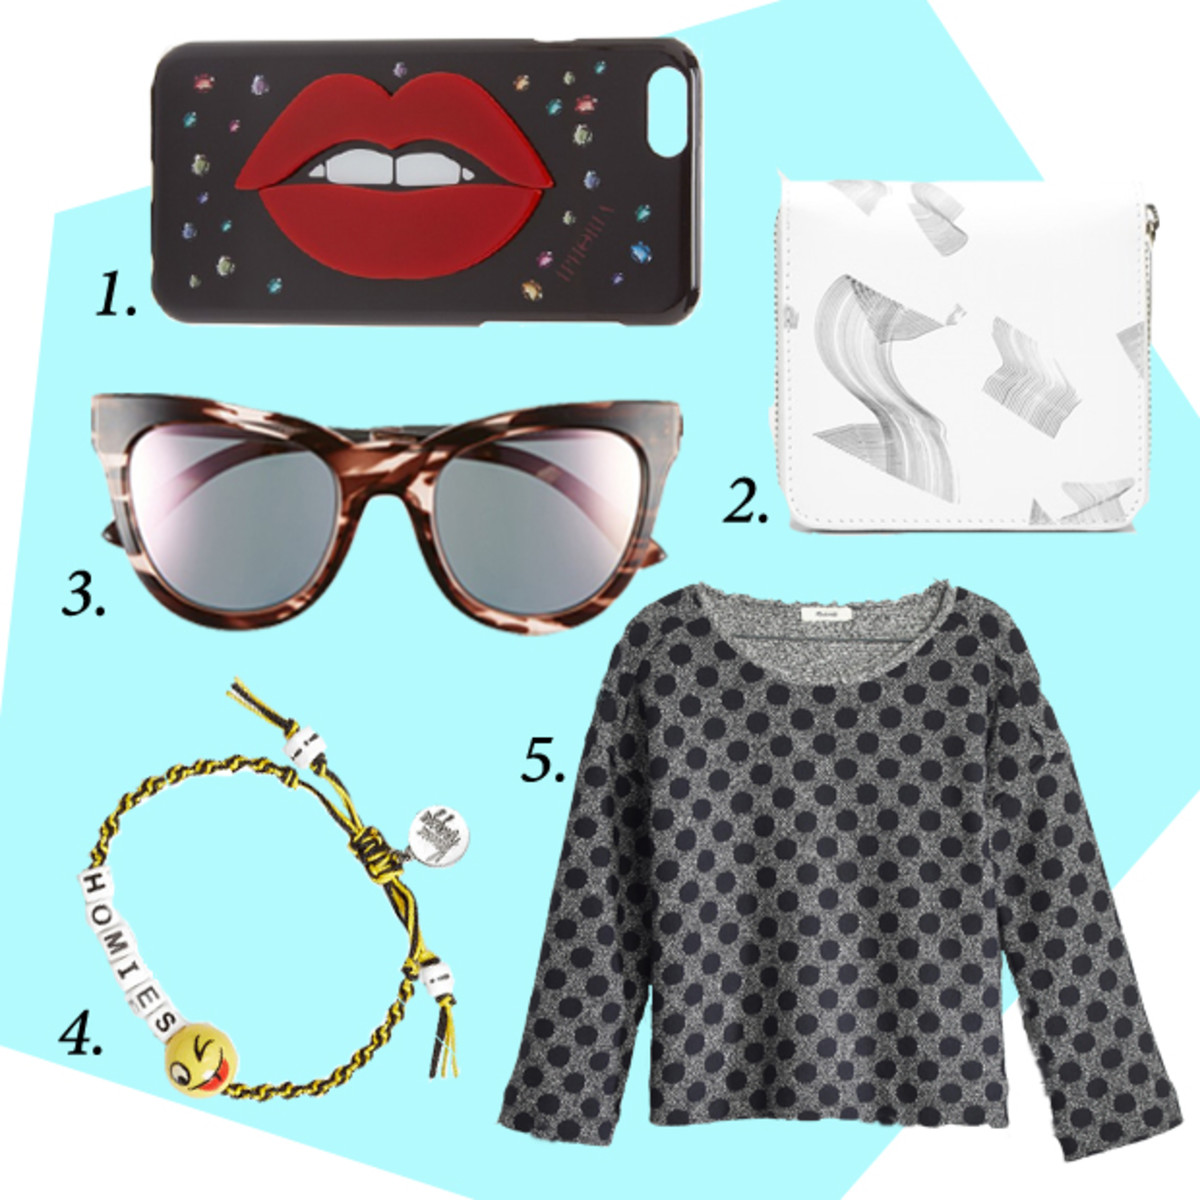 1. Iphoria Jewel Lips iPhone 6/6s Case, $55,  available at Shopbop.com. 2. Everlane The Square Zip Wallet, $98, available at Everlane.com. 3. Le Specs 'Le Debutante' Cat Eye Sunglasses, $79, available at Nordstrom.com. 4. Venessa Arizaga 'Homies' Bracelets, $55, available at Nordstrom.com. 5. Madewell Reversible Marled Dot Top, $79.50, available at Madewell.com.